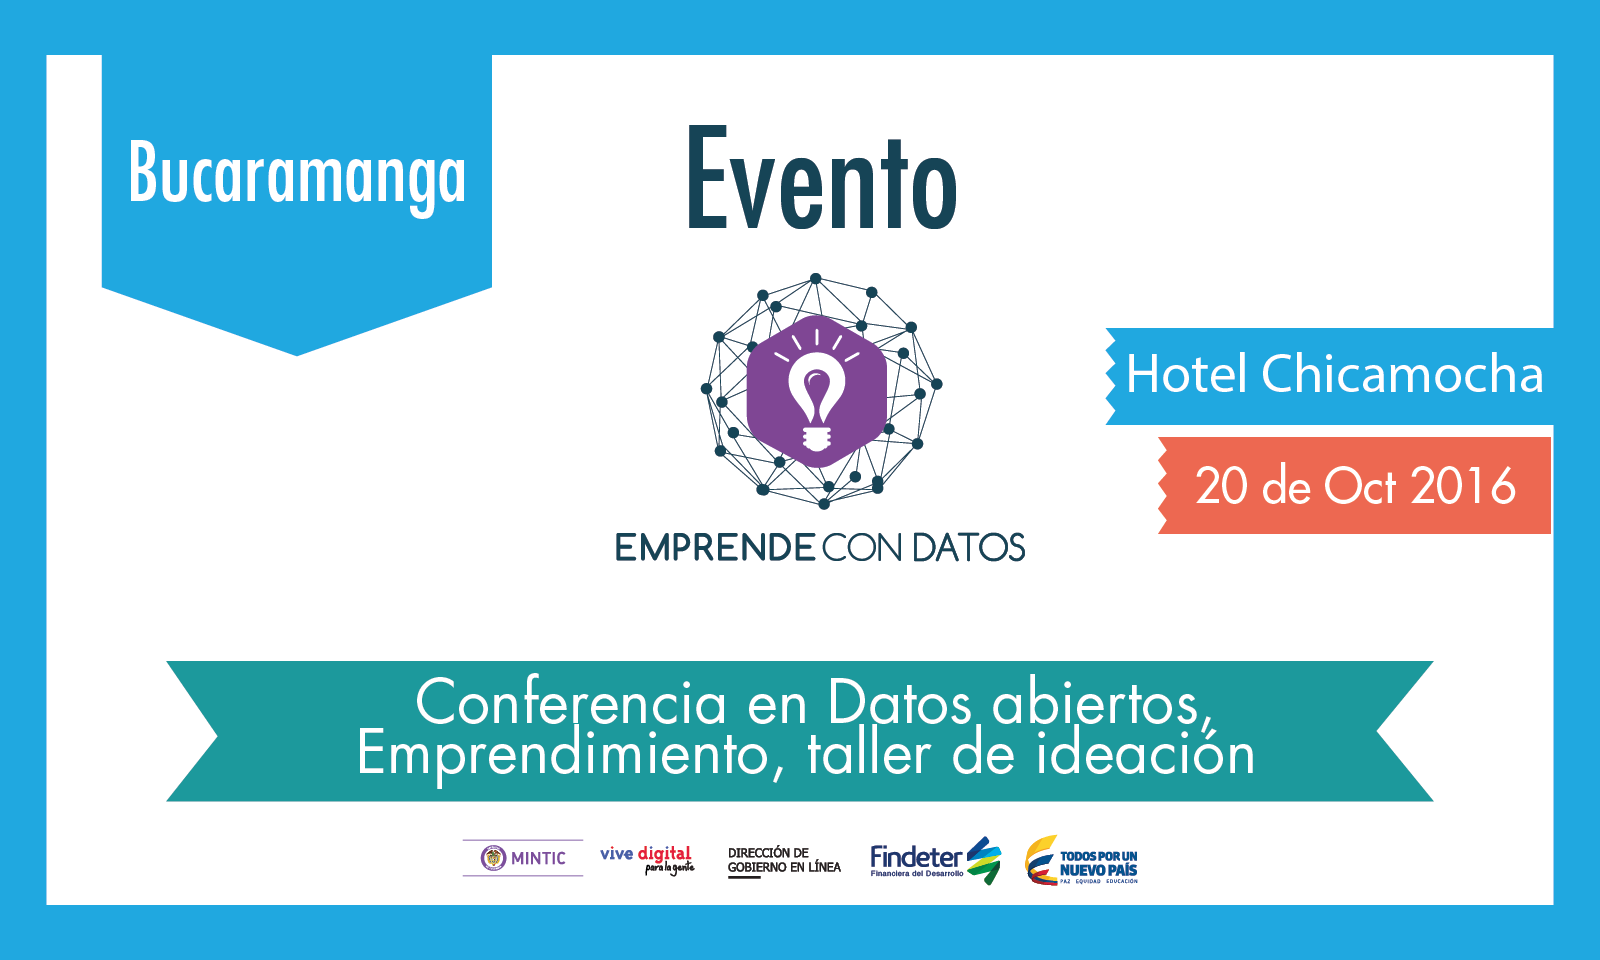 Convocatoria Emprende con datos